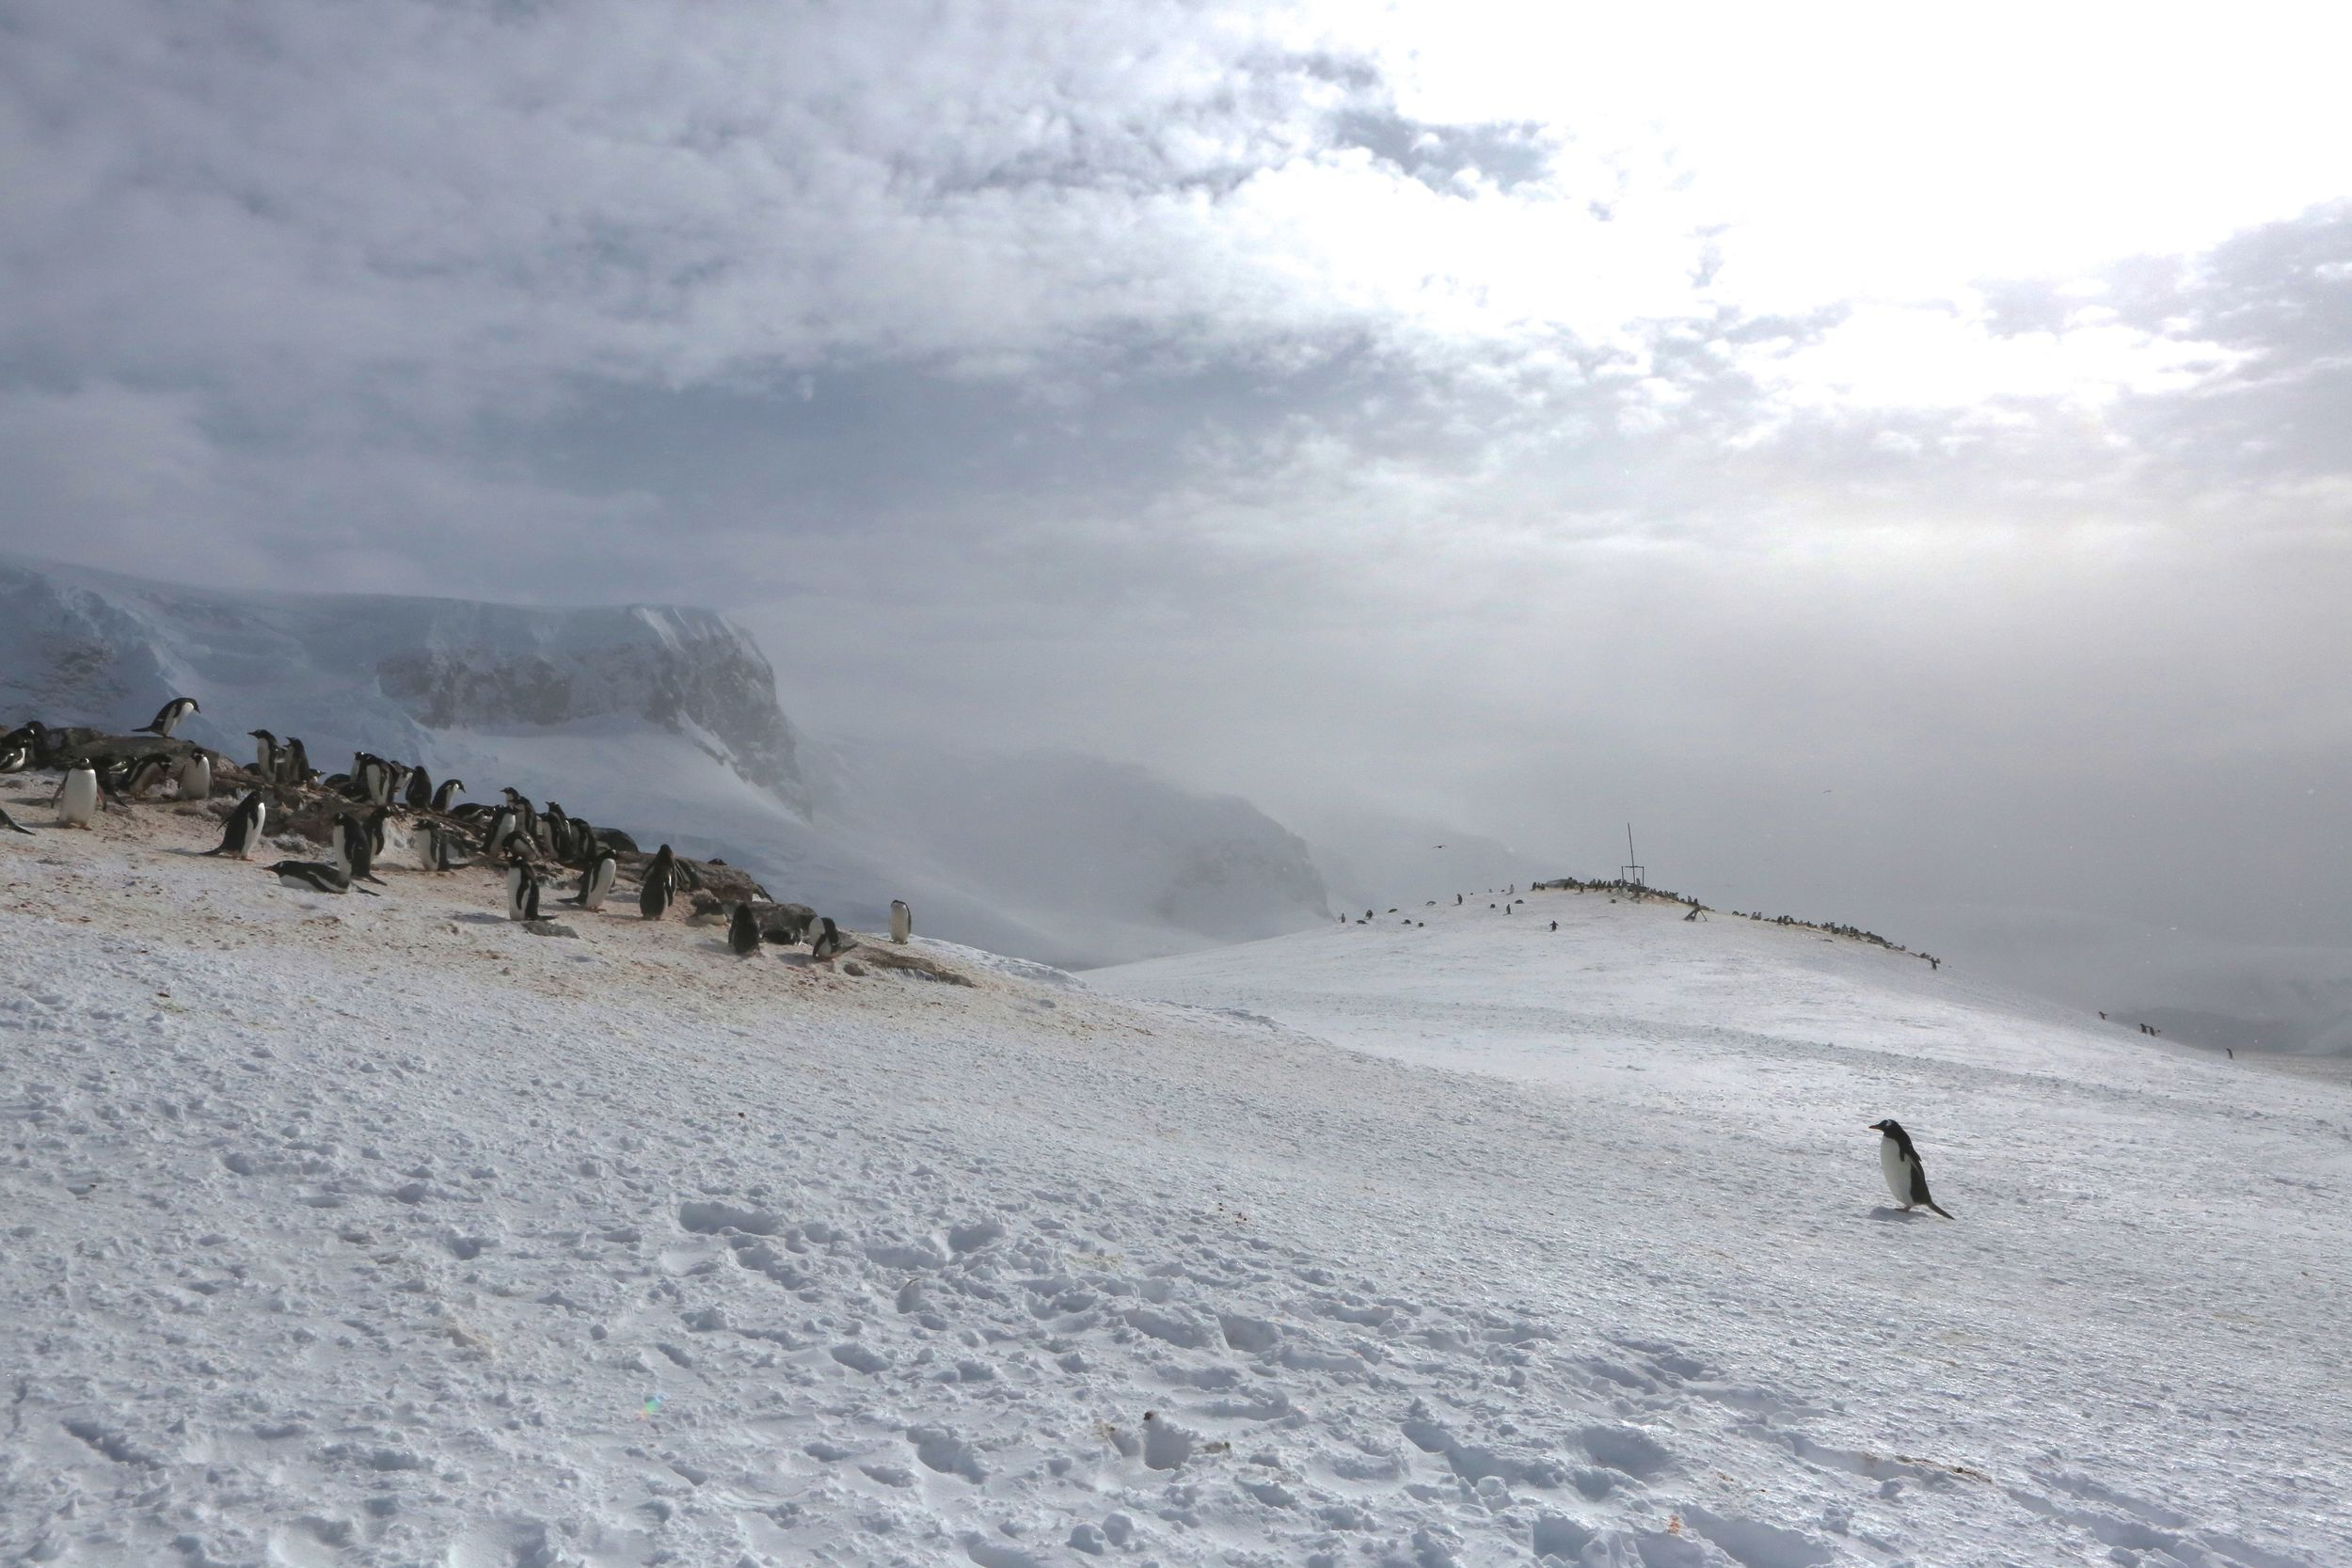 The rolling terrain at Mikkelsen is home to breeding and nesting gentoo penguins, which were clustered in several spots.